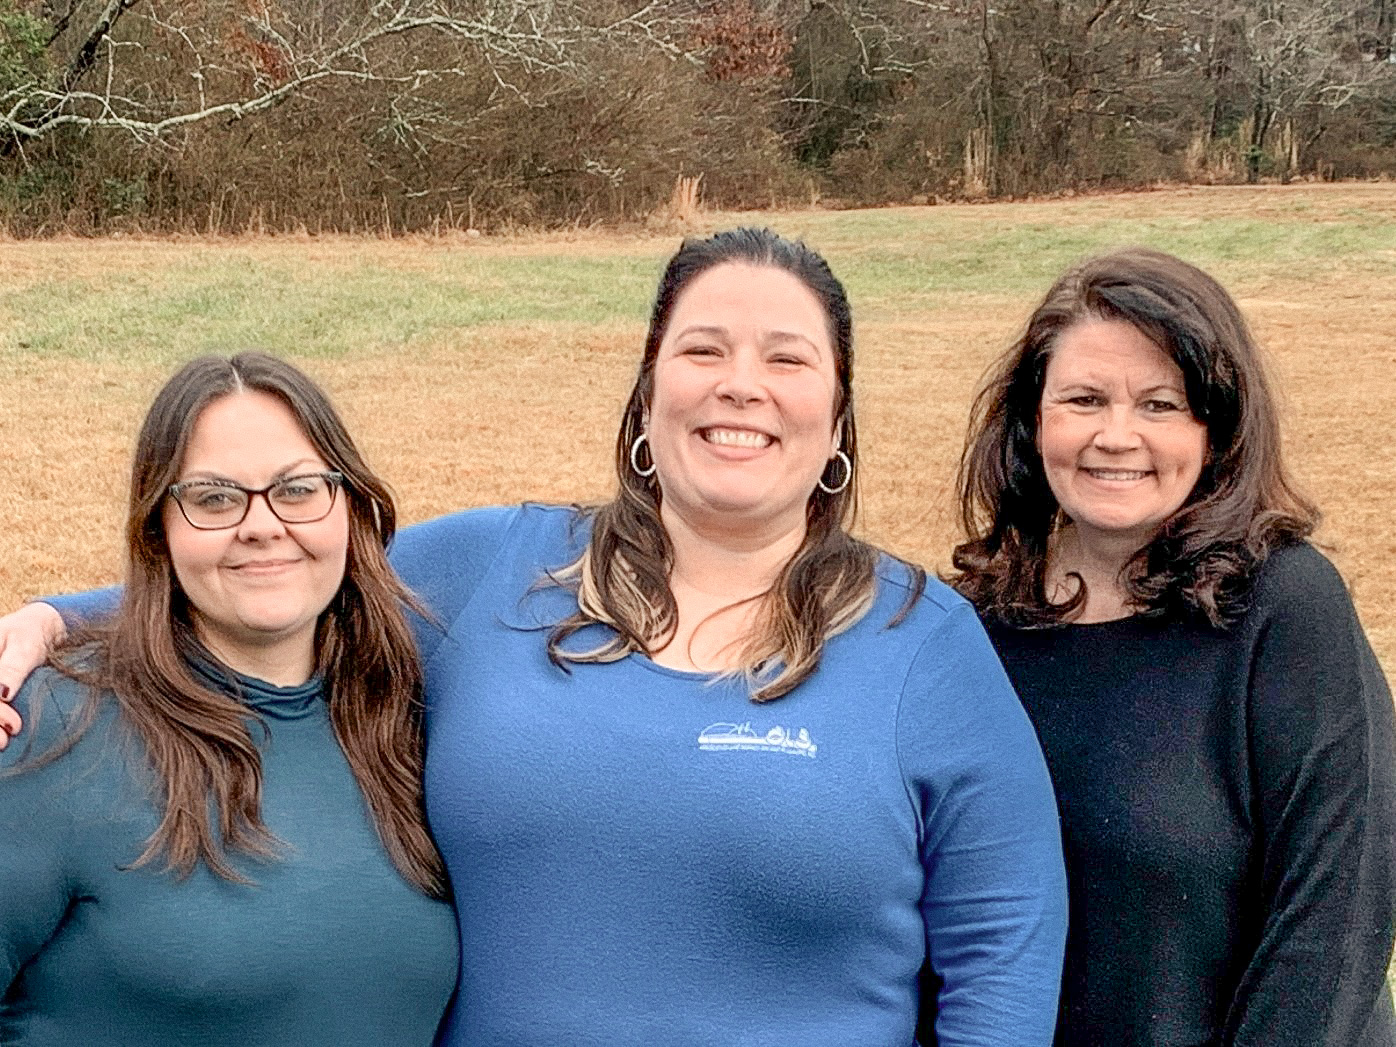 office_team.jpeg